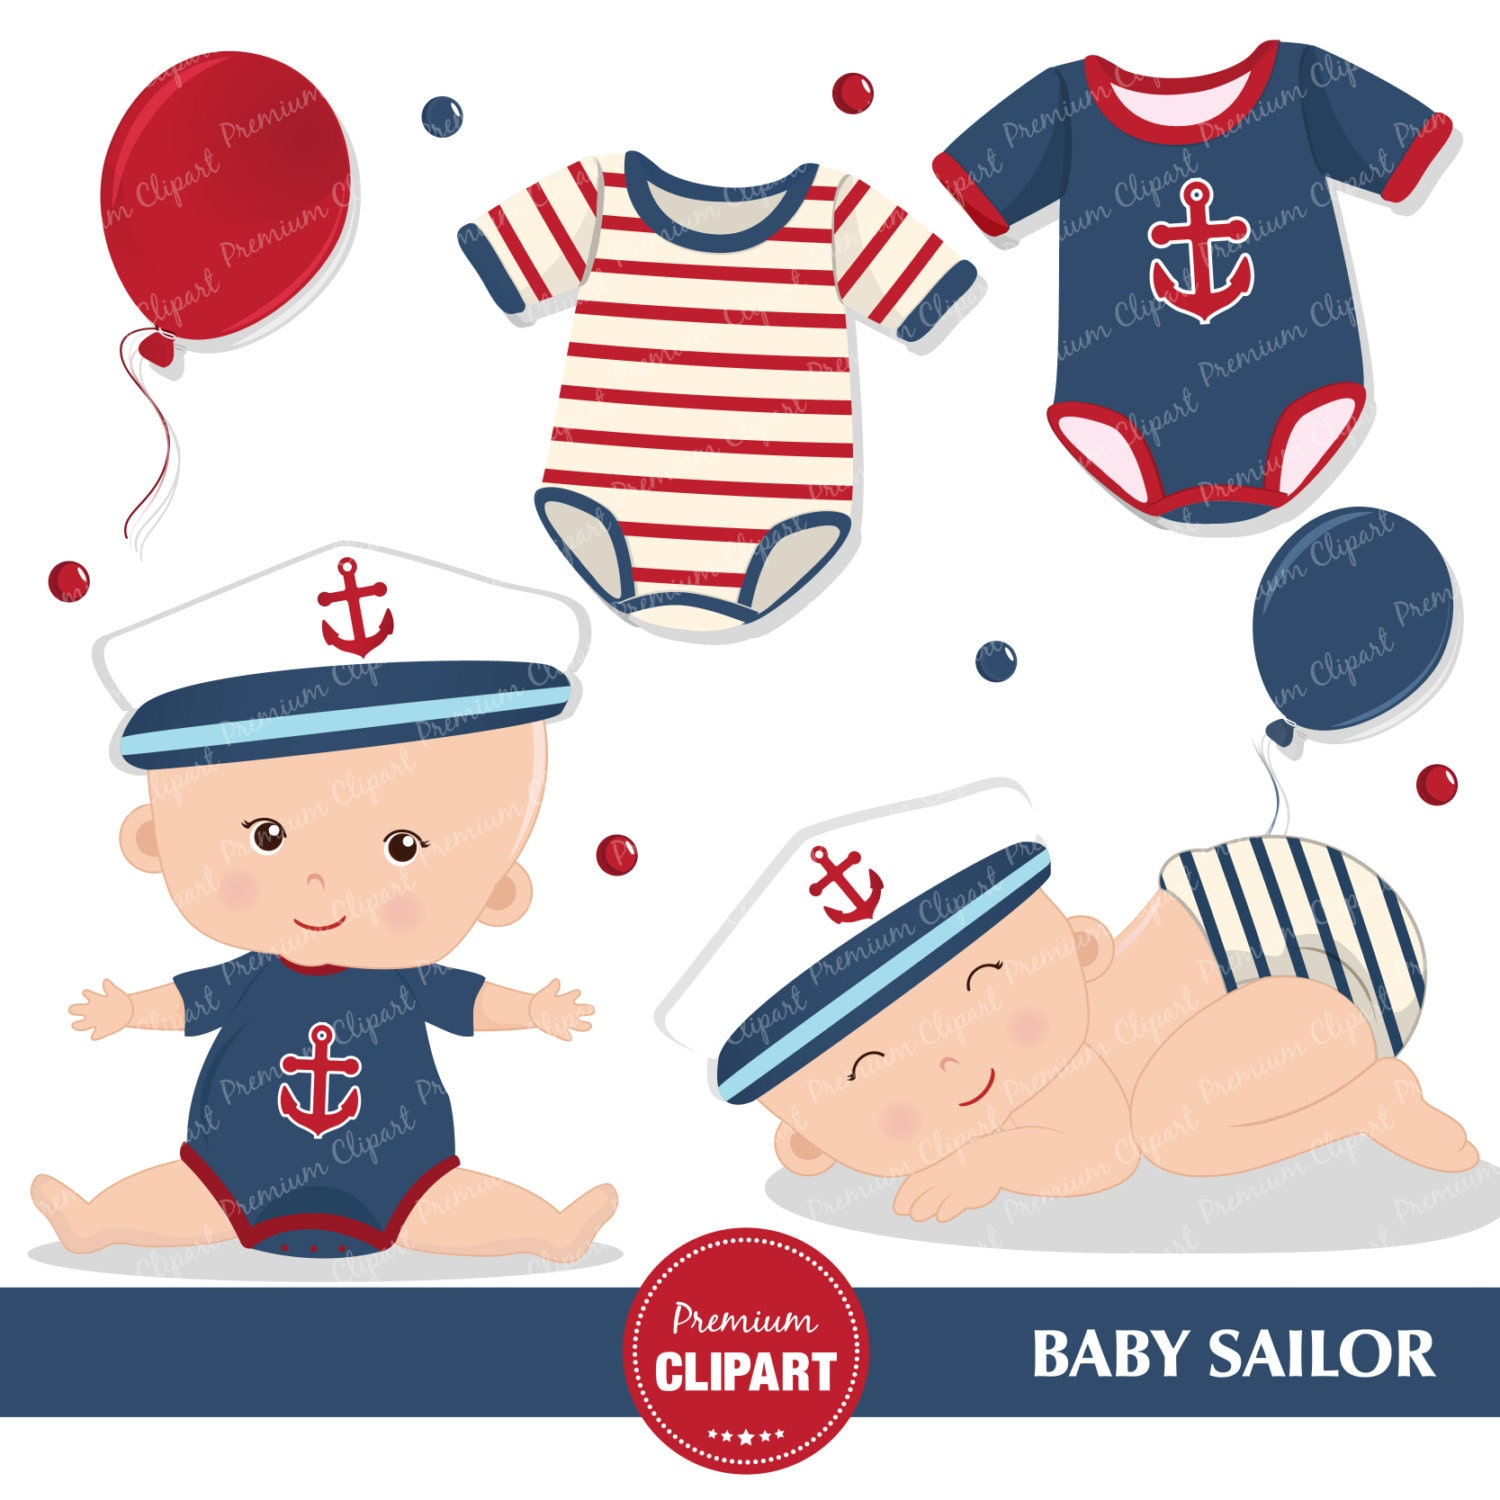 Nautical baby shower clipart, Baby sailor, Sailing clipart ...